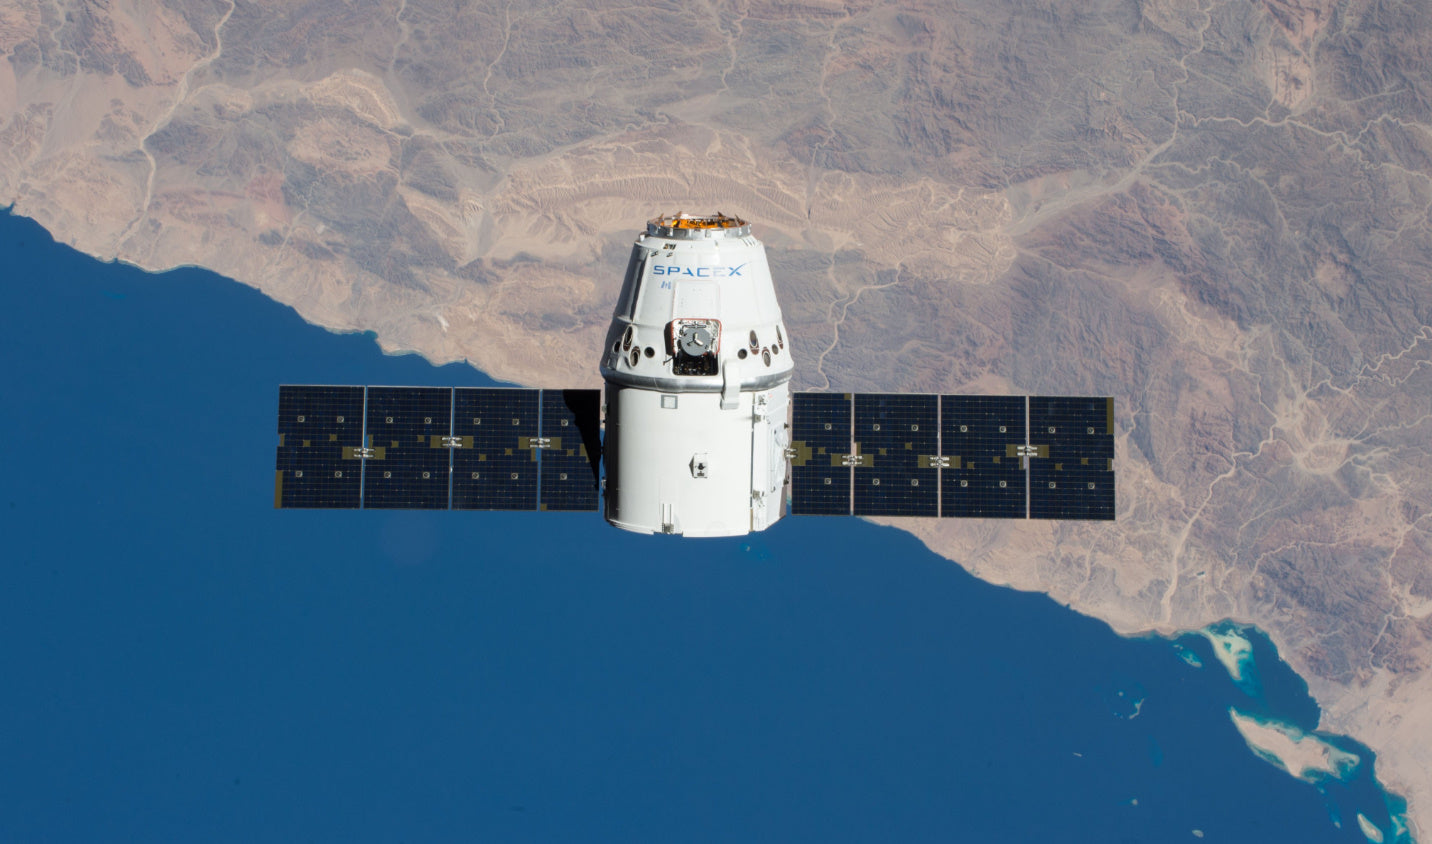 SpaceX will perform Dragon's CRS-20 resupply mission for NASA to the International Space Station next week